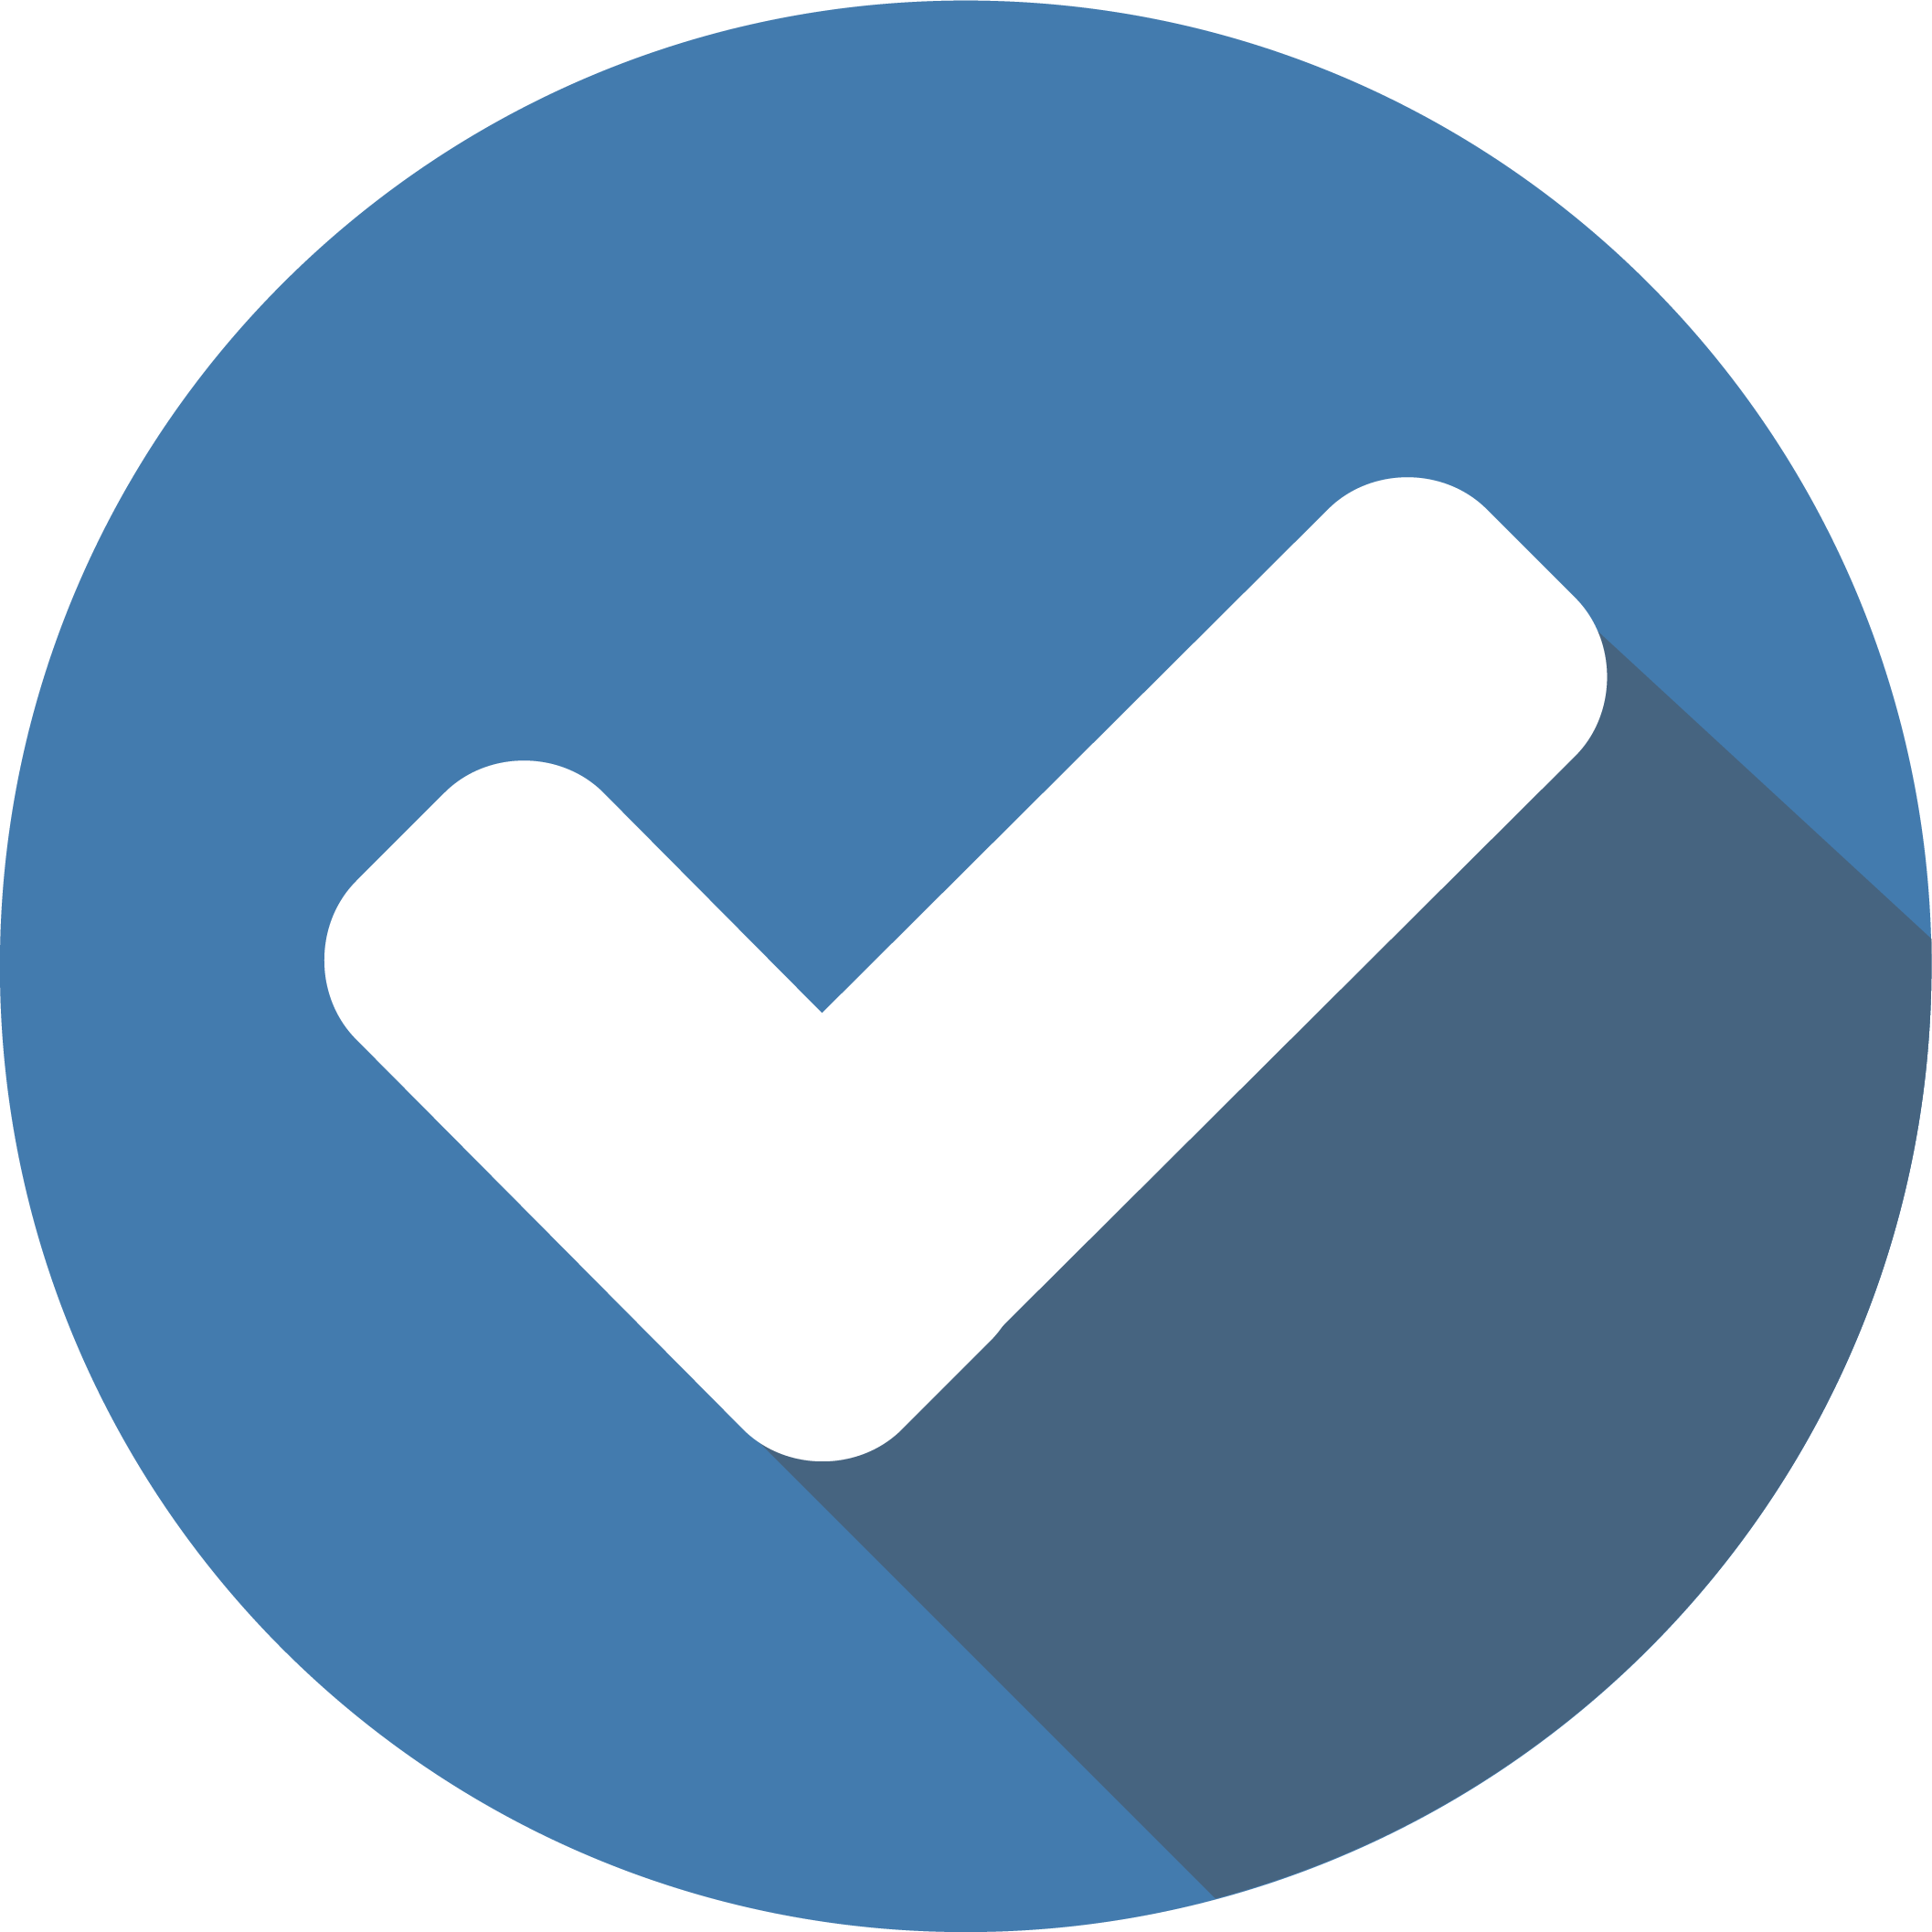 Blue tick icon